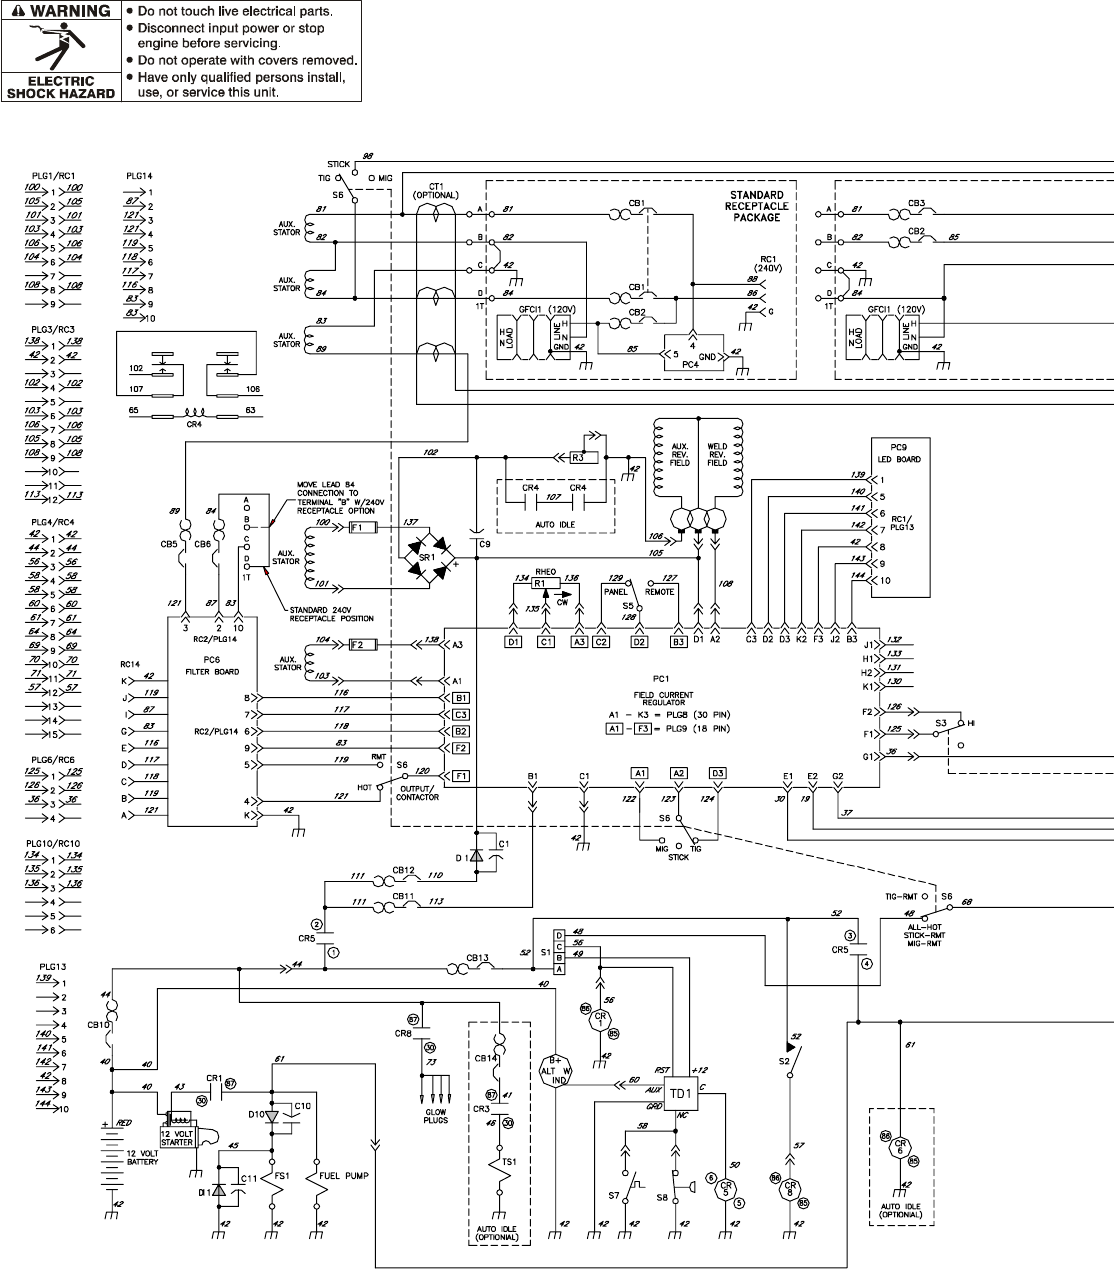 mig welder wiring diagram pdf with Lincoln Arc Welder Sa 200 Parts Diagram on Bobcat Fuel Gauge Wiring Diagrams as well 91 94 240sx Vaccuum Diagrams  ponent Locaters as well Wiring Diagram For Kubota Rtv 1100 further Spot Welding Parts Diagram together with Diagram For Welding.